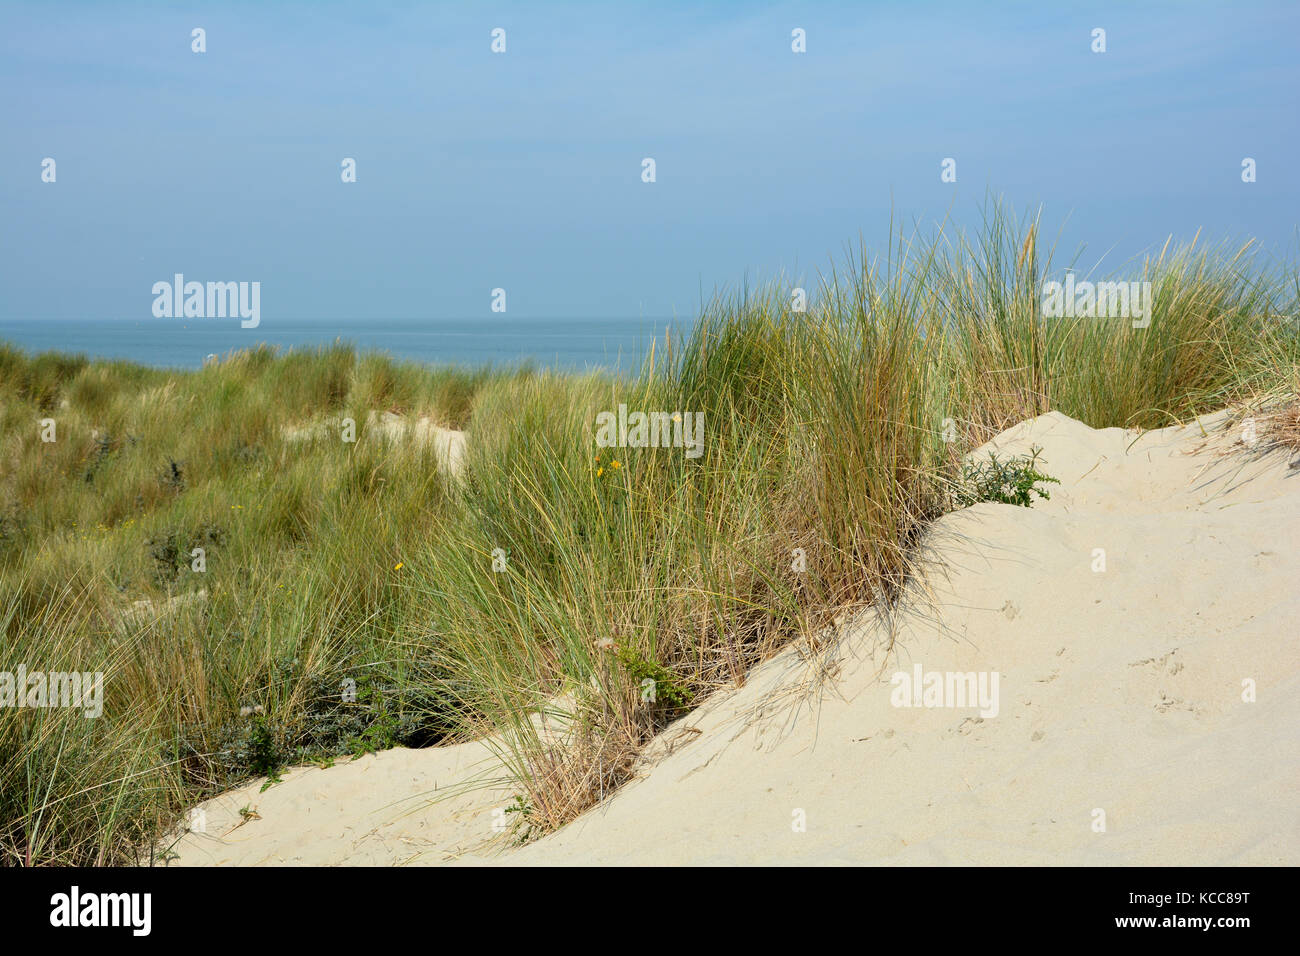 In the middle of sand dunes on the North Sea   with the sea in the background - Stock Image